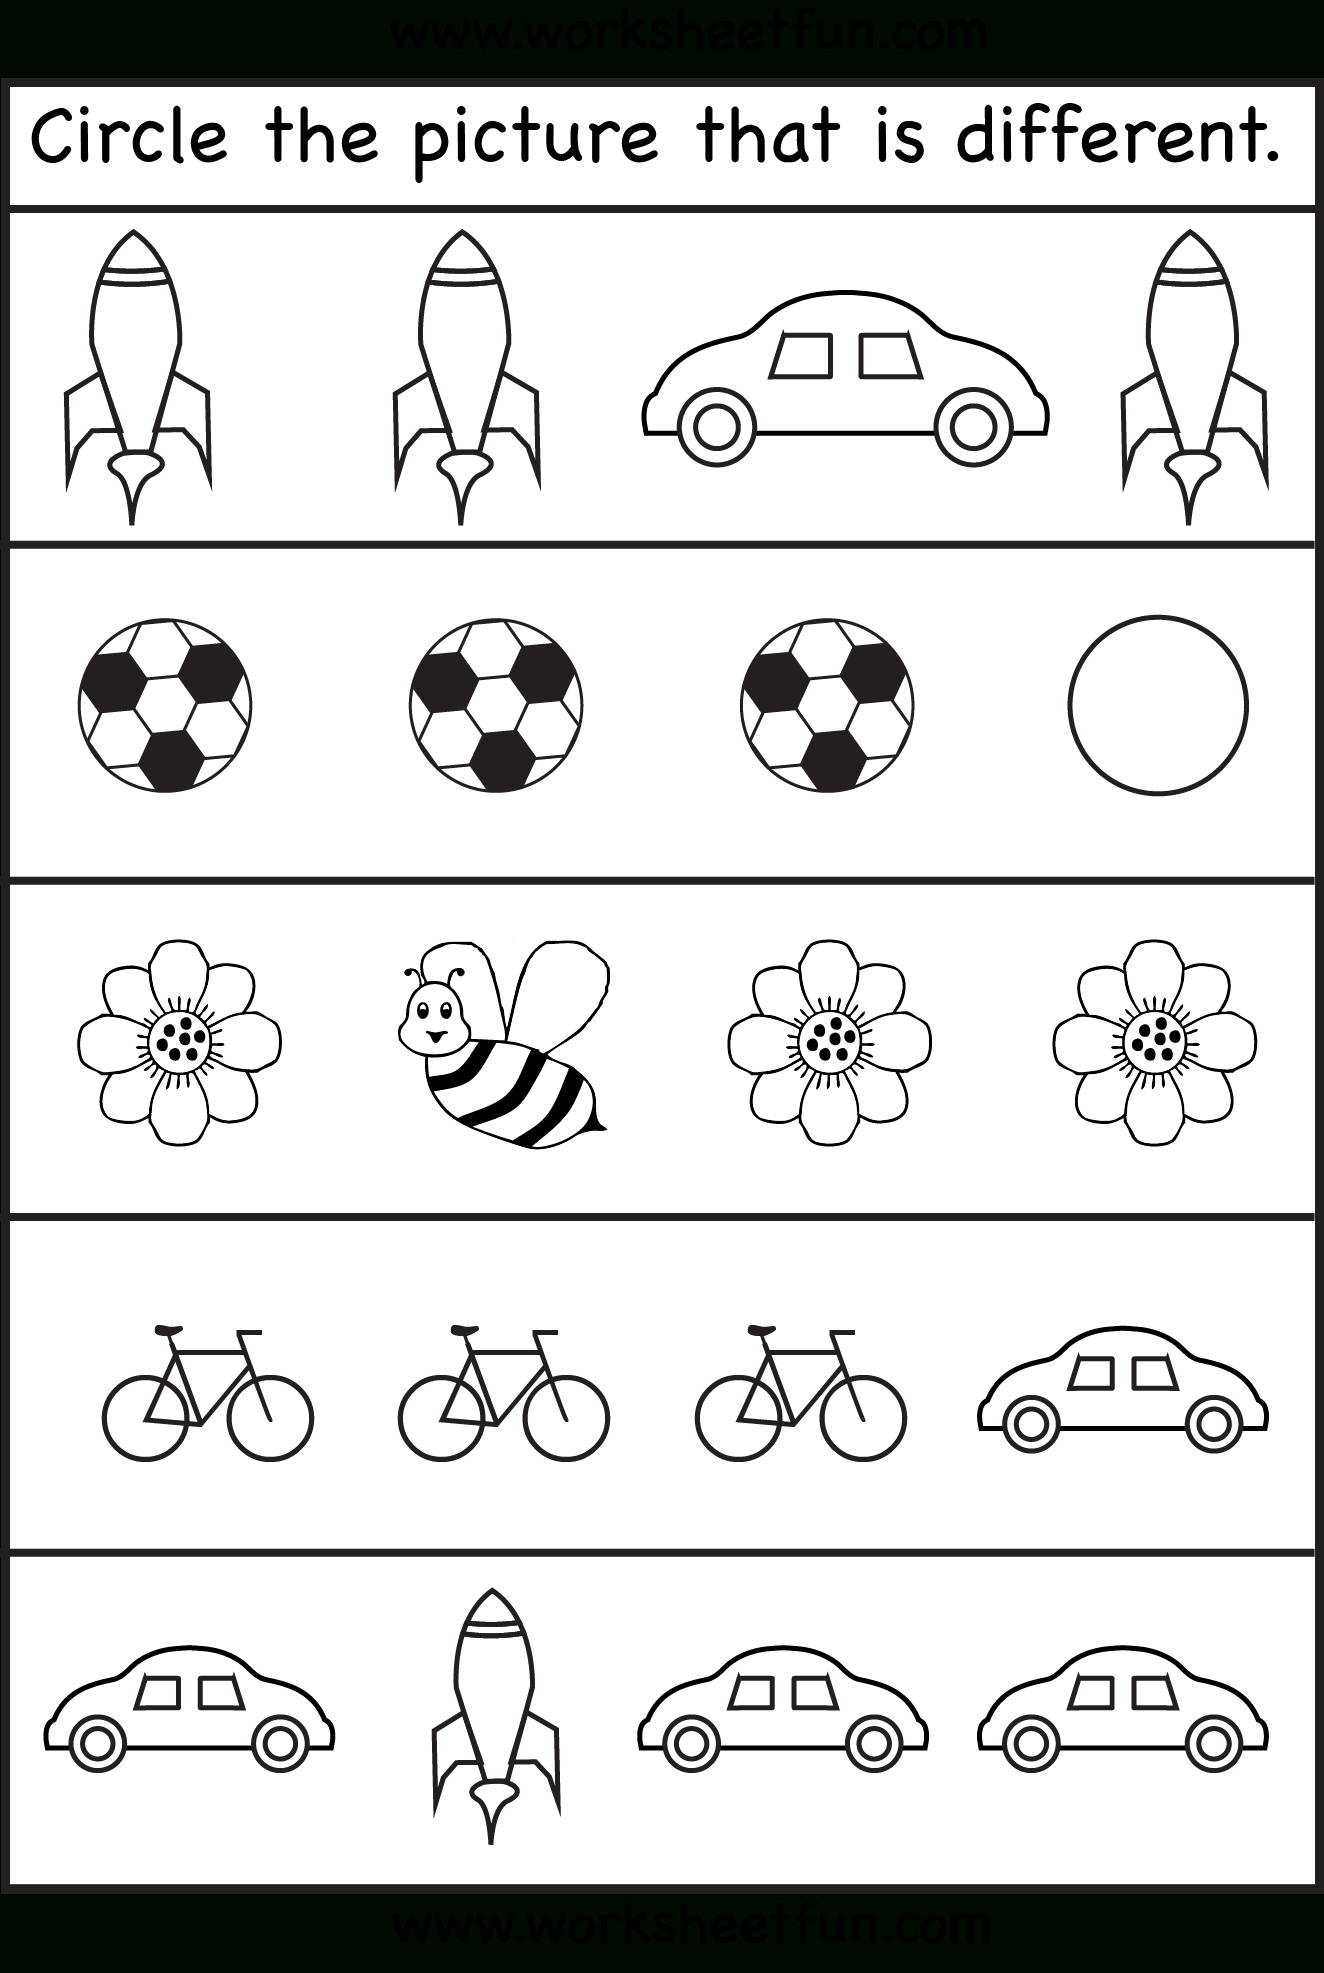 Circle The Picture That Is Different - 4 Worksheets | Pg | Preschool - Free Printable Worksheets For 3 Year Olds